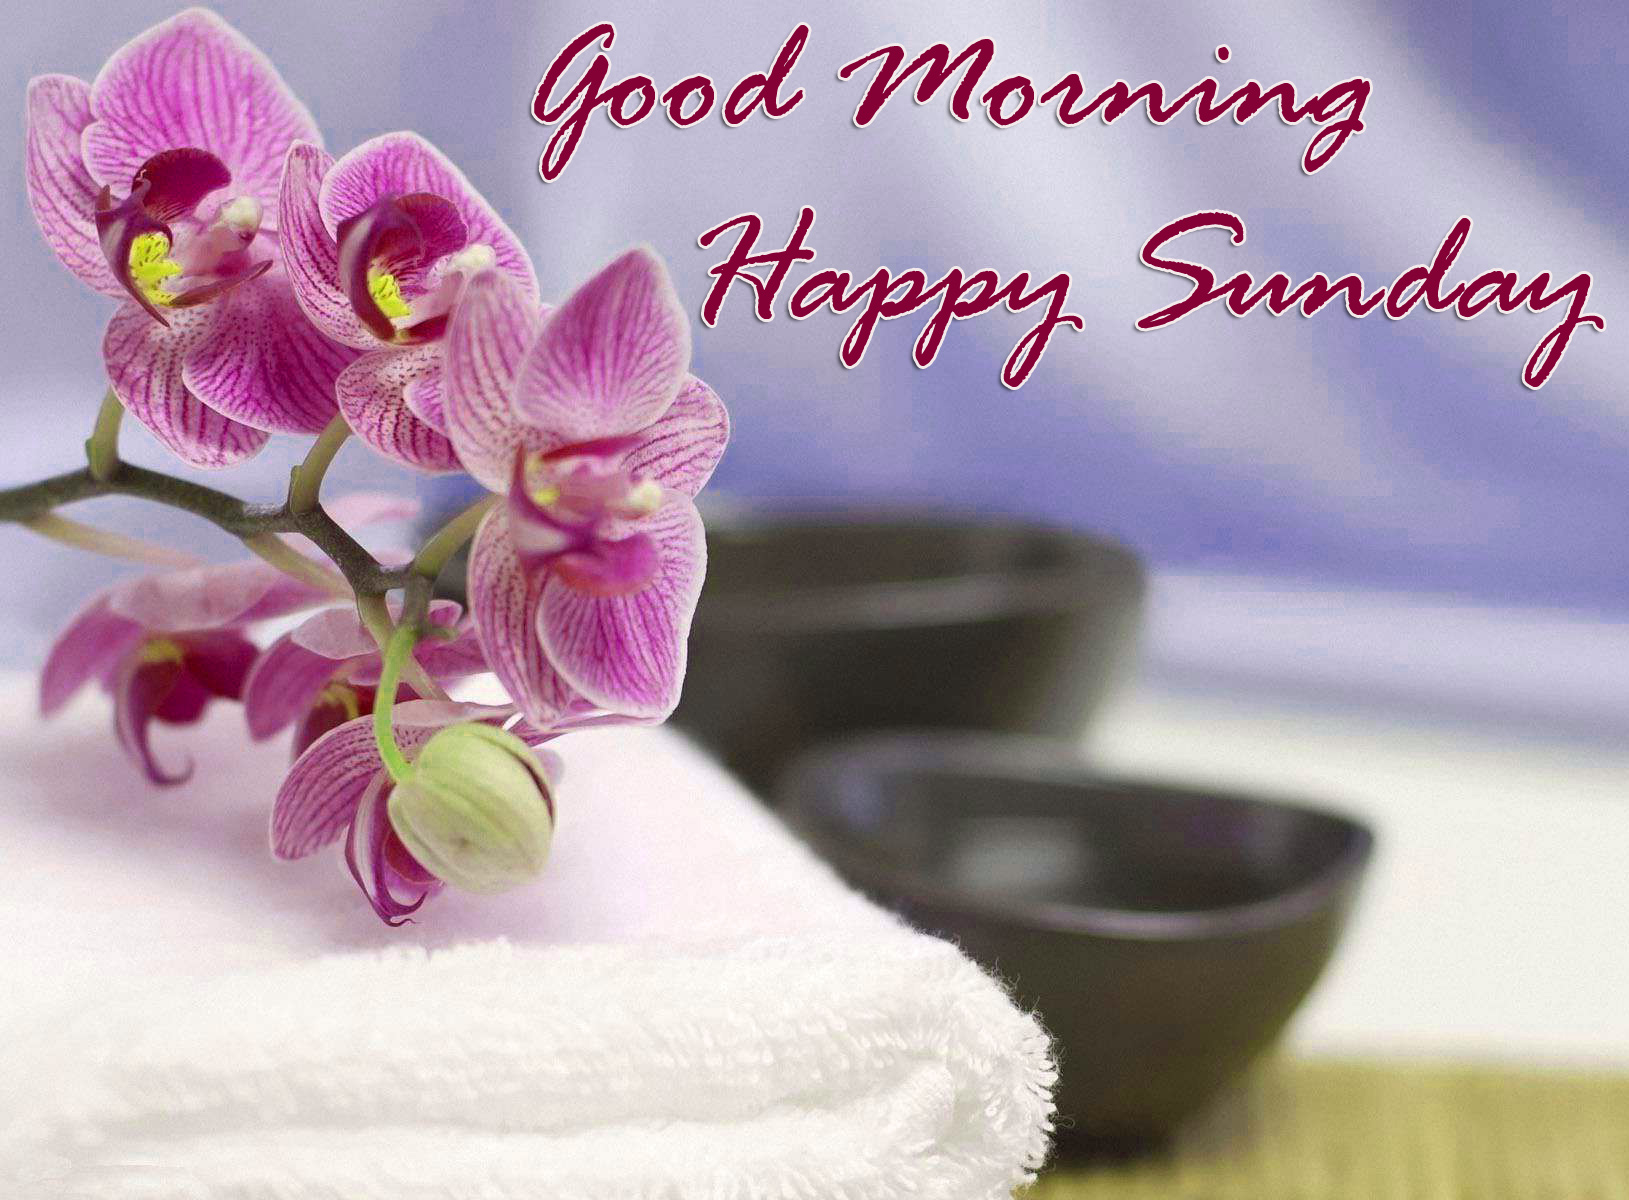 Sunday Good Morning Images Photo Pics For Lover Download